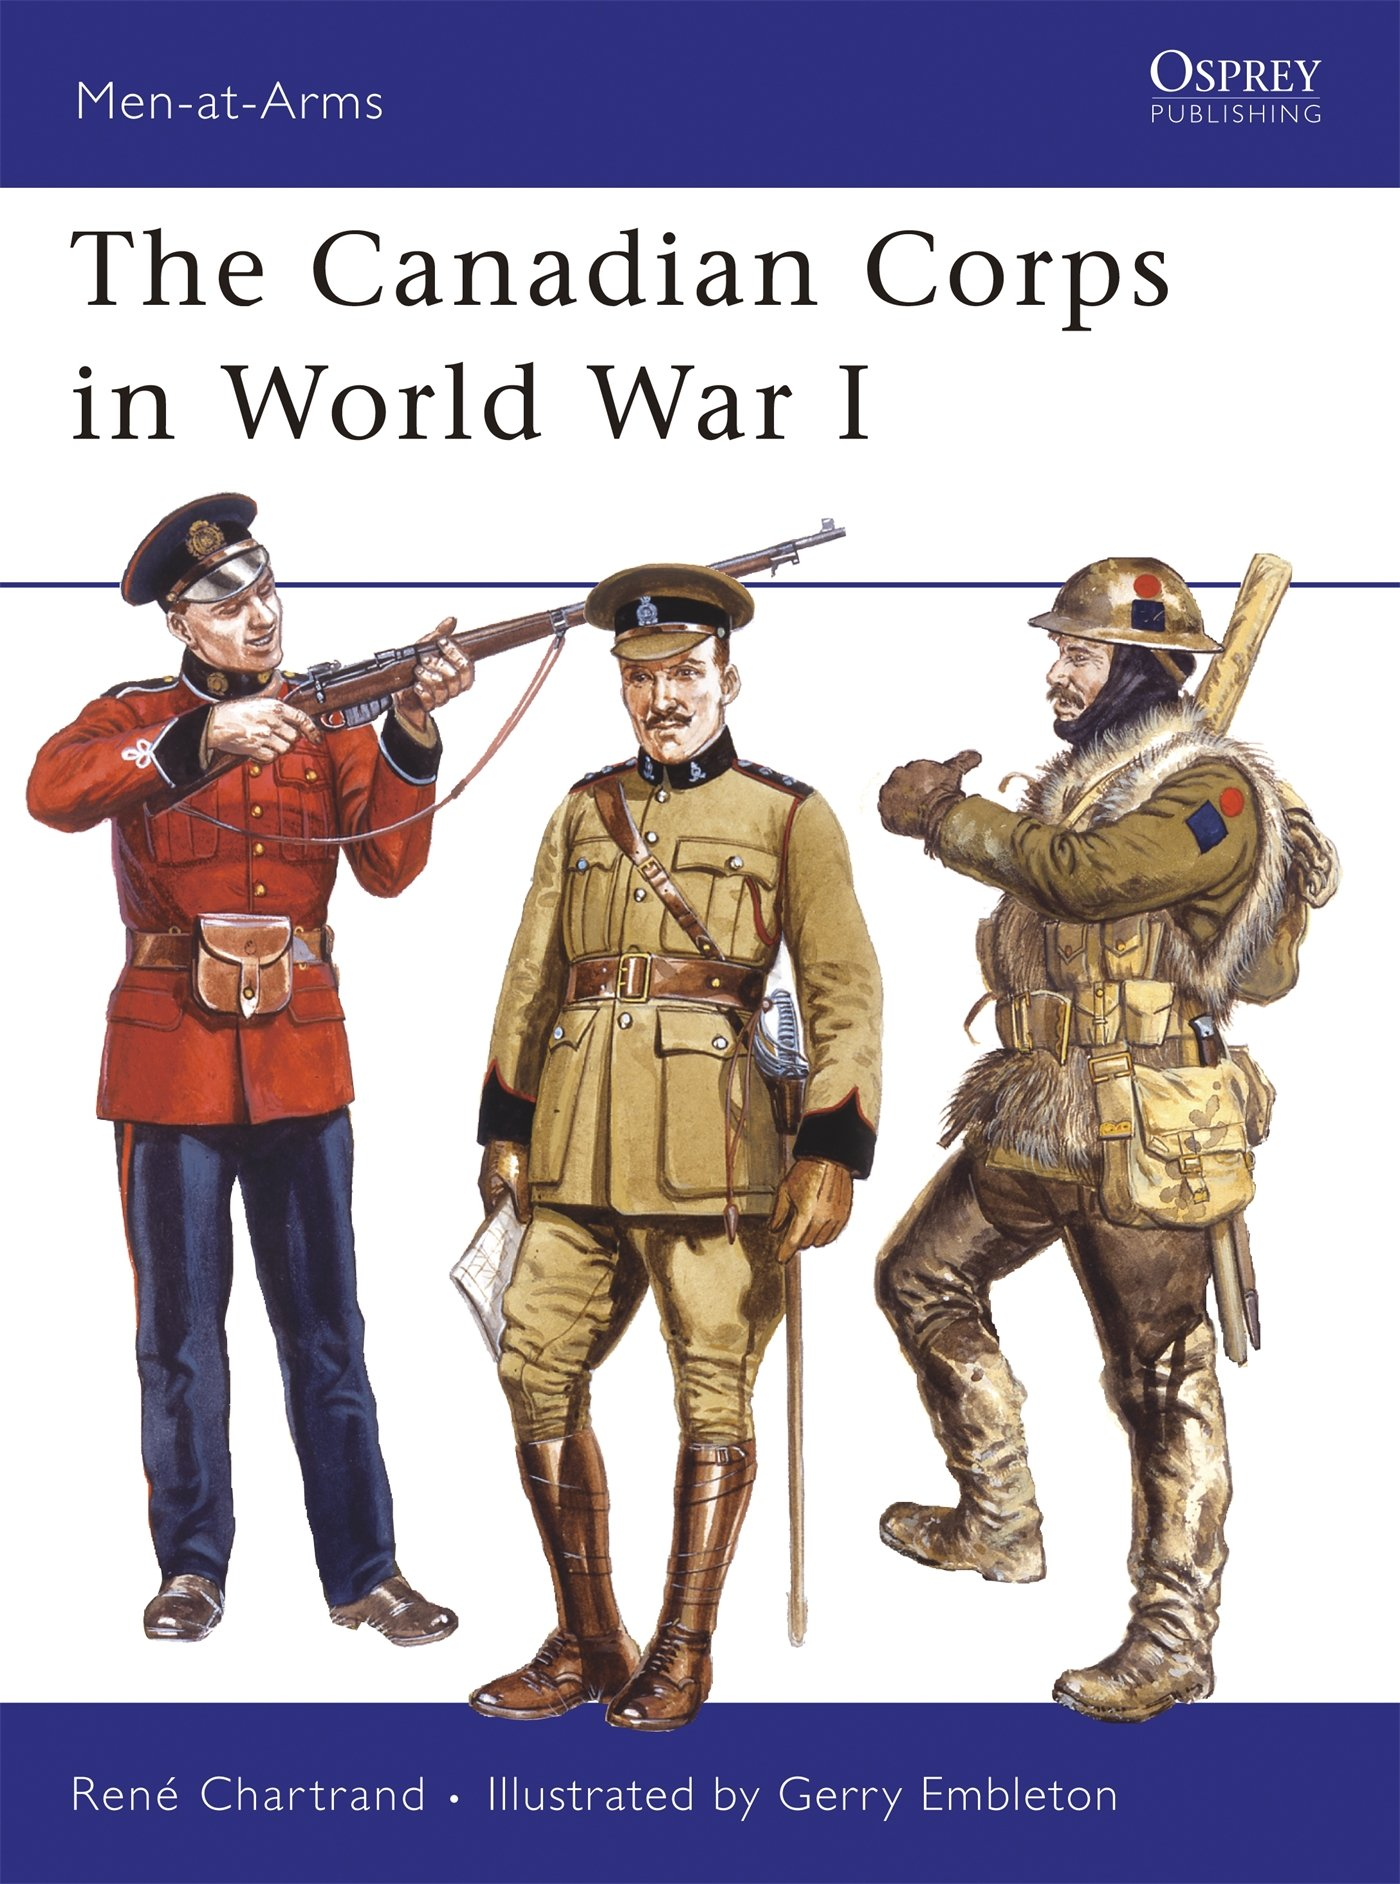 The Canadian Corps in World War I: René Chartrand, Gerry